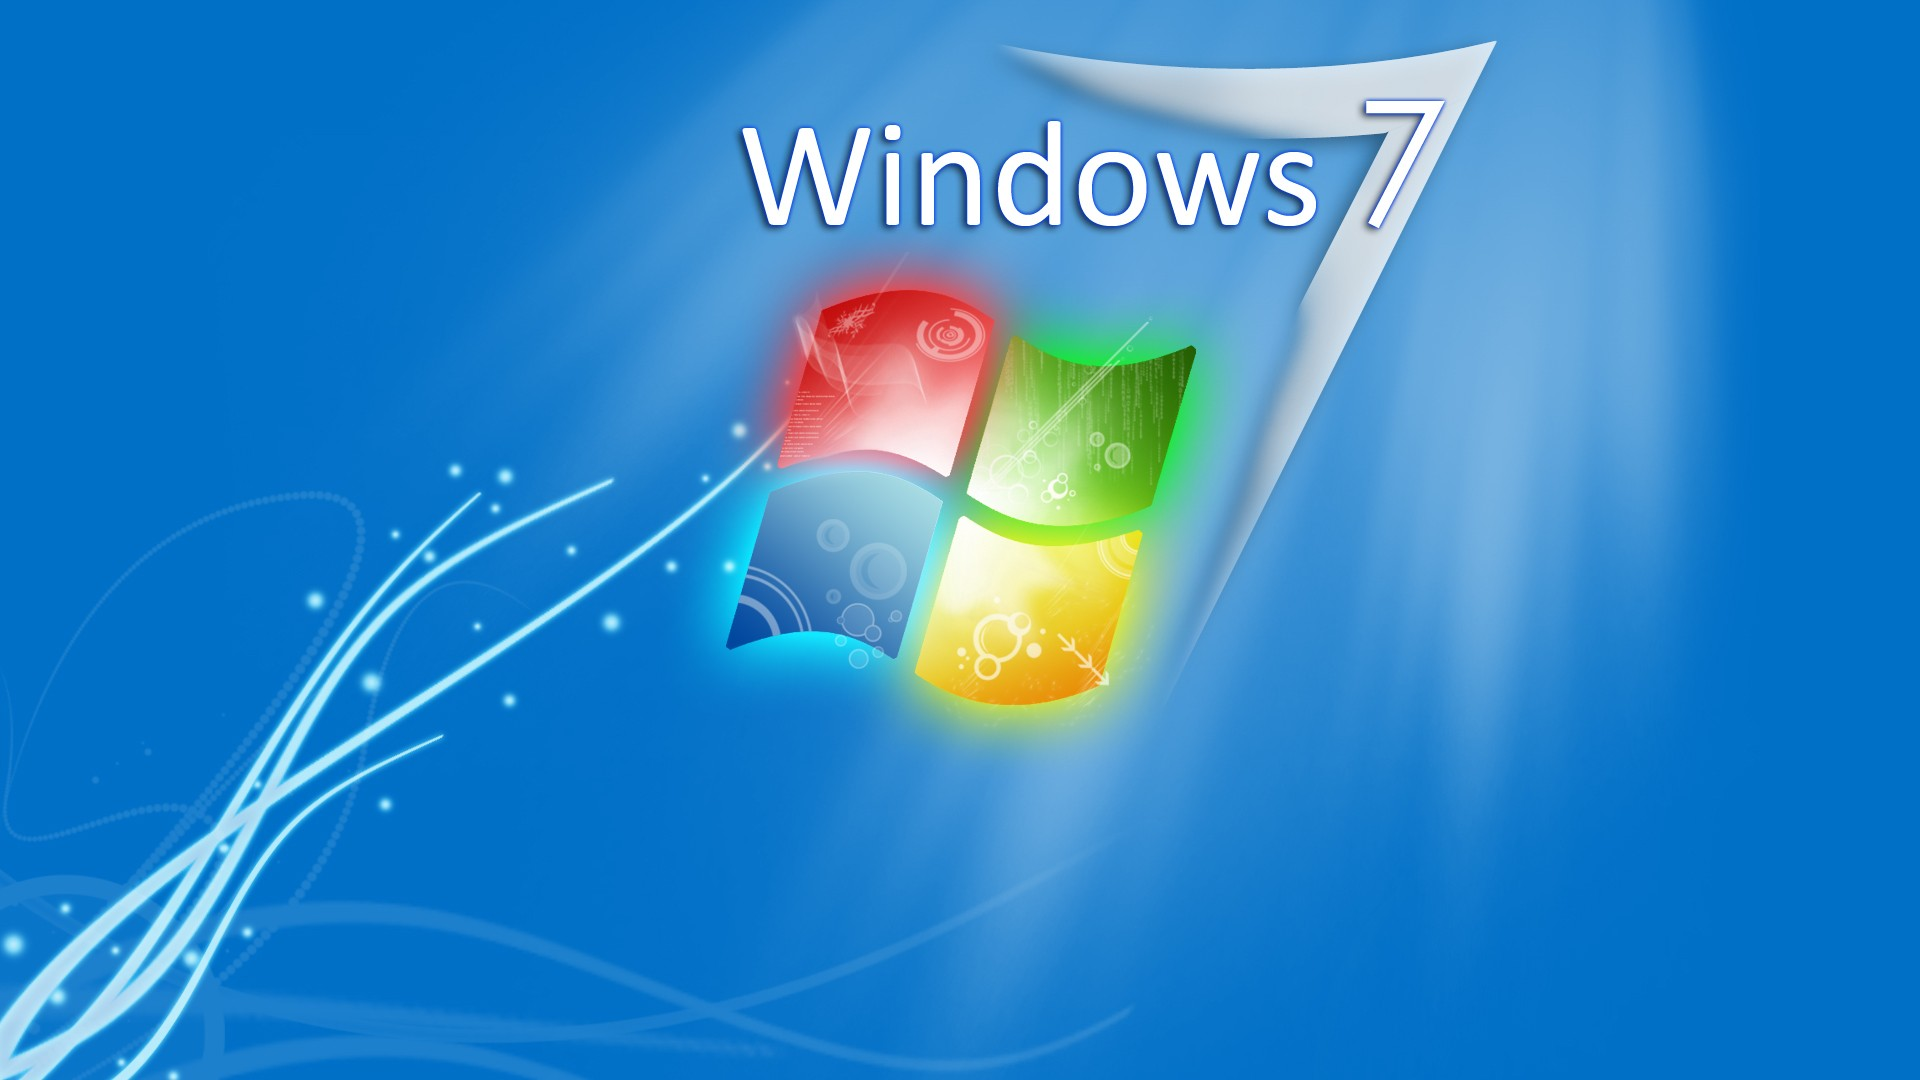 Картинки Windows 7 Windows Компьютеры